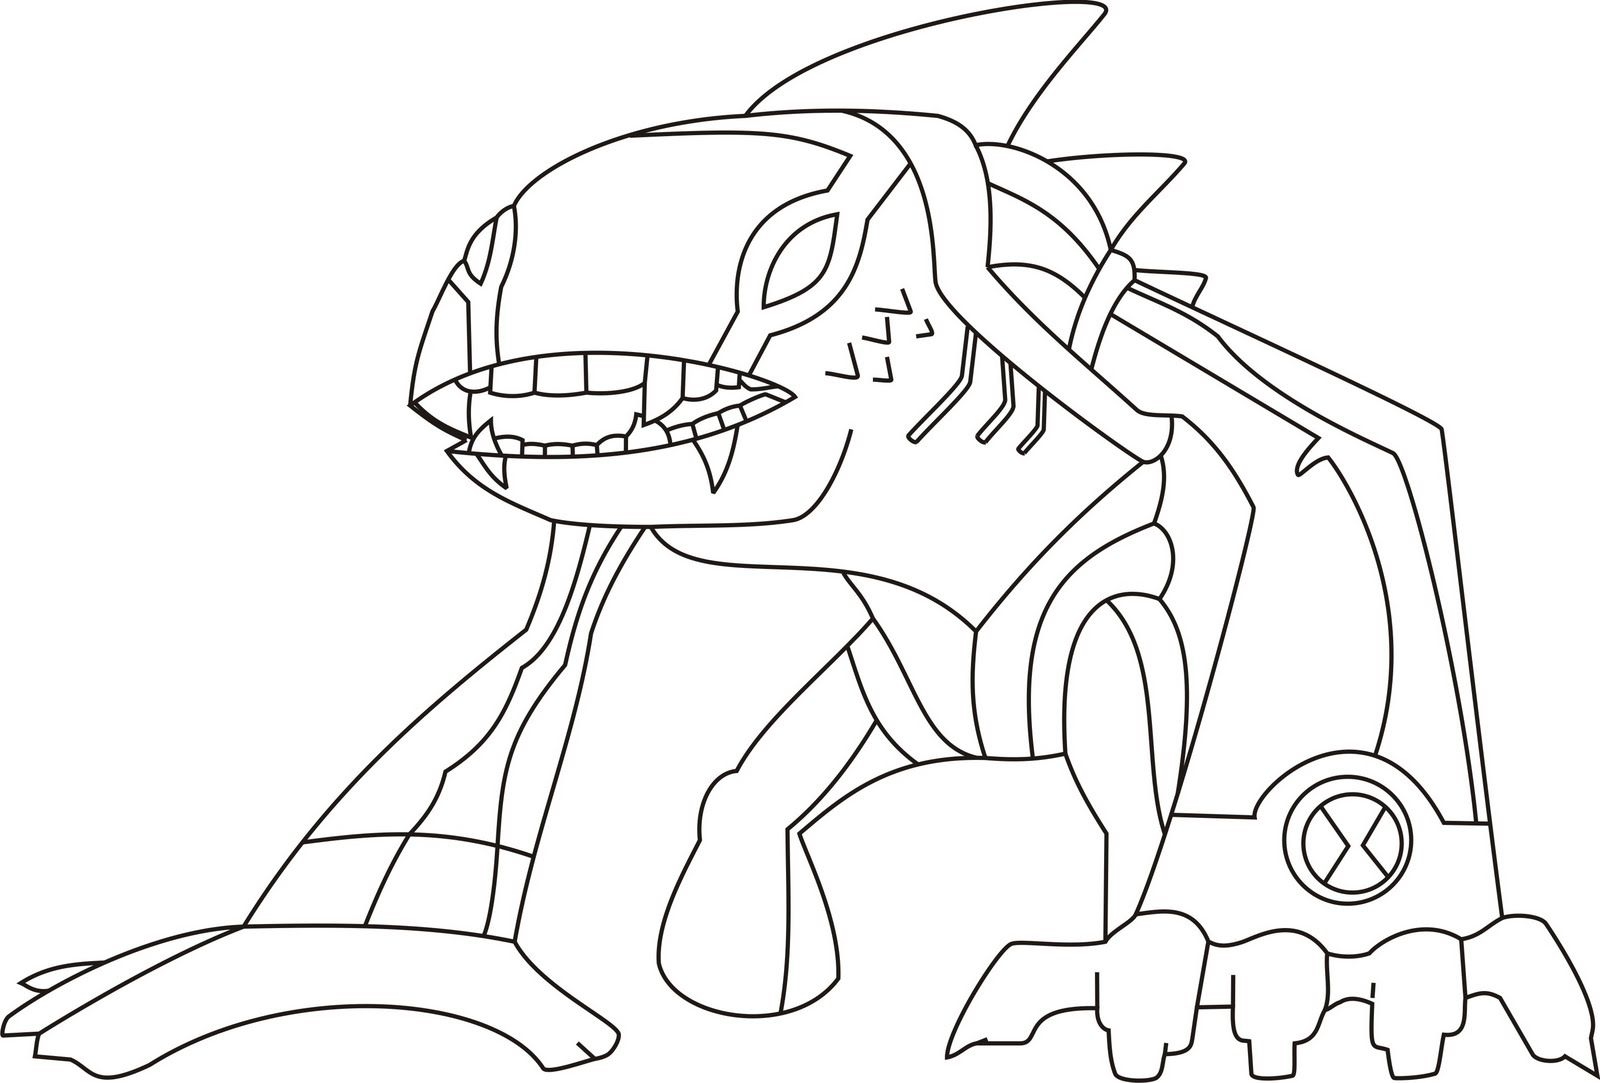 Cute Ben 10 Coloring Pages For Kids